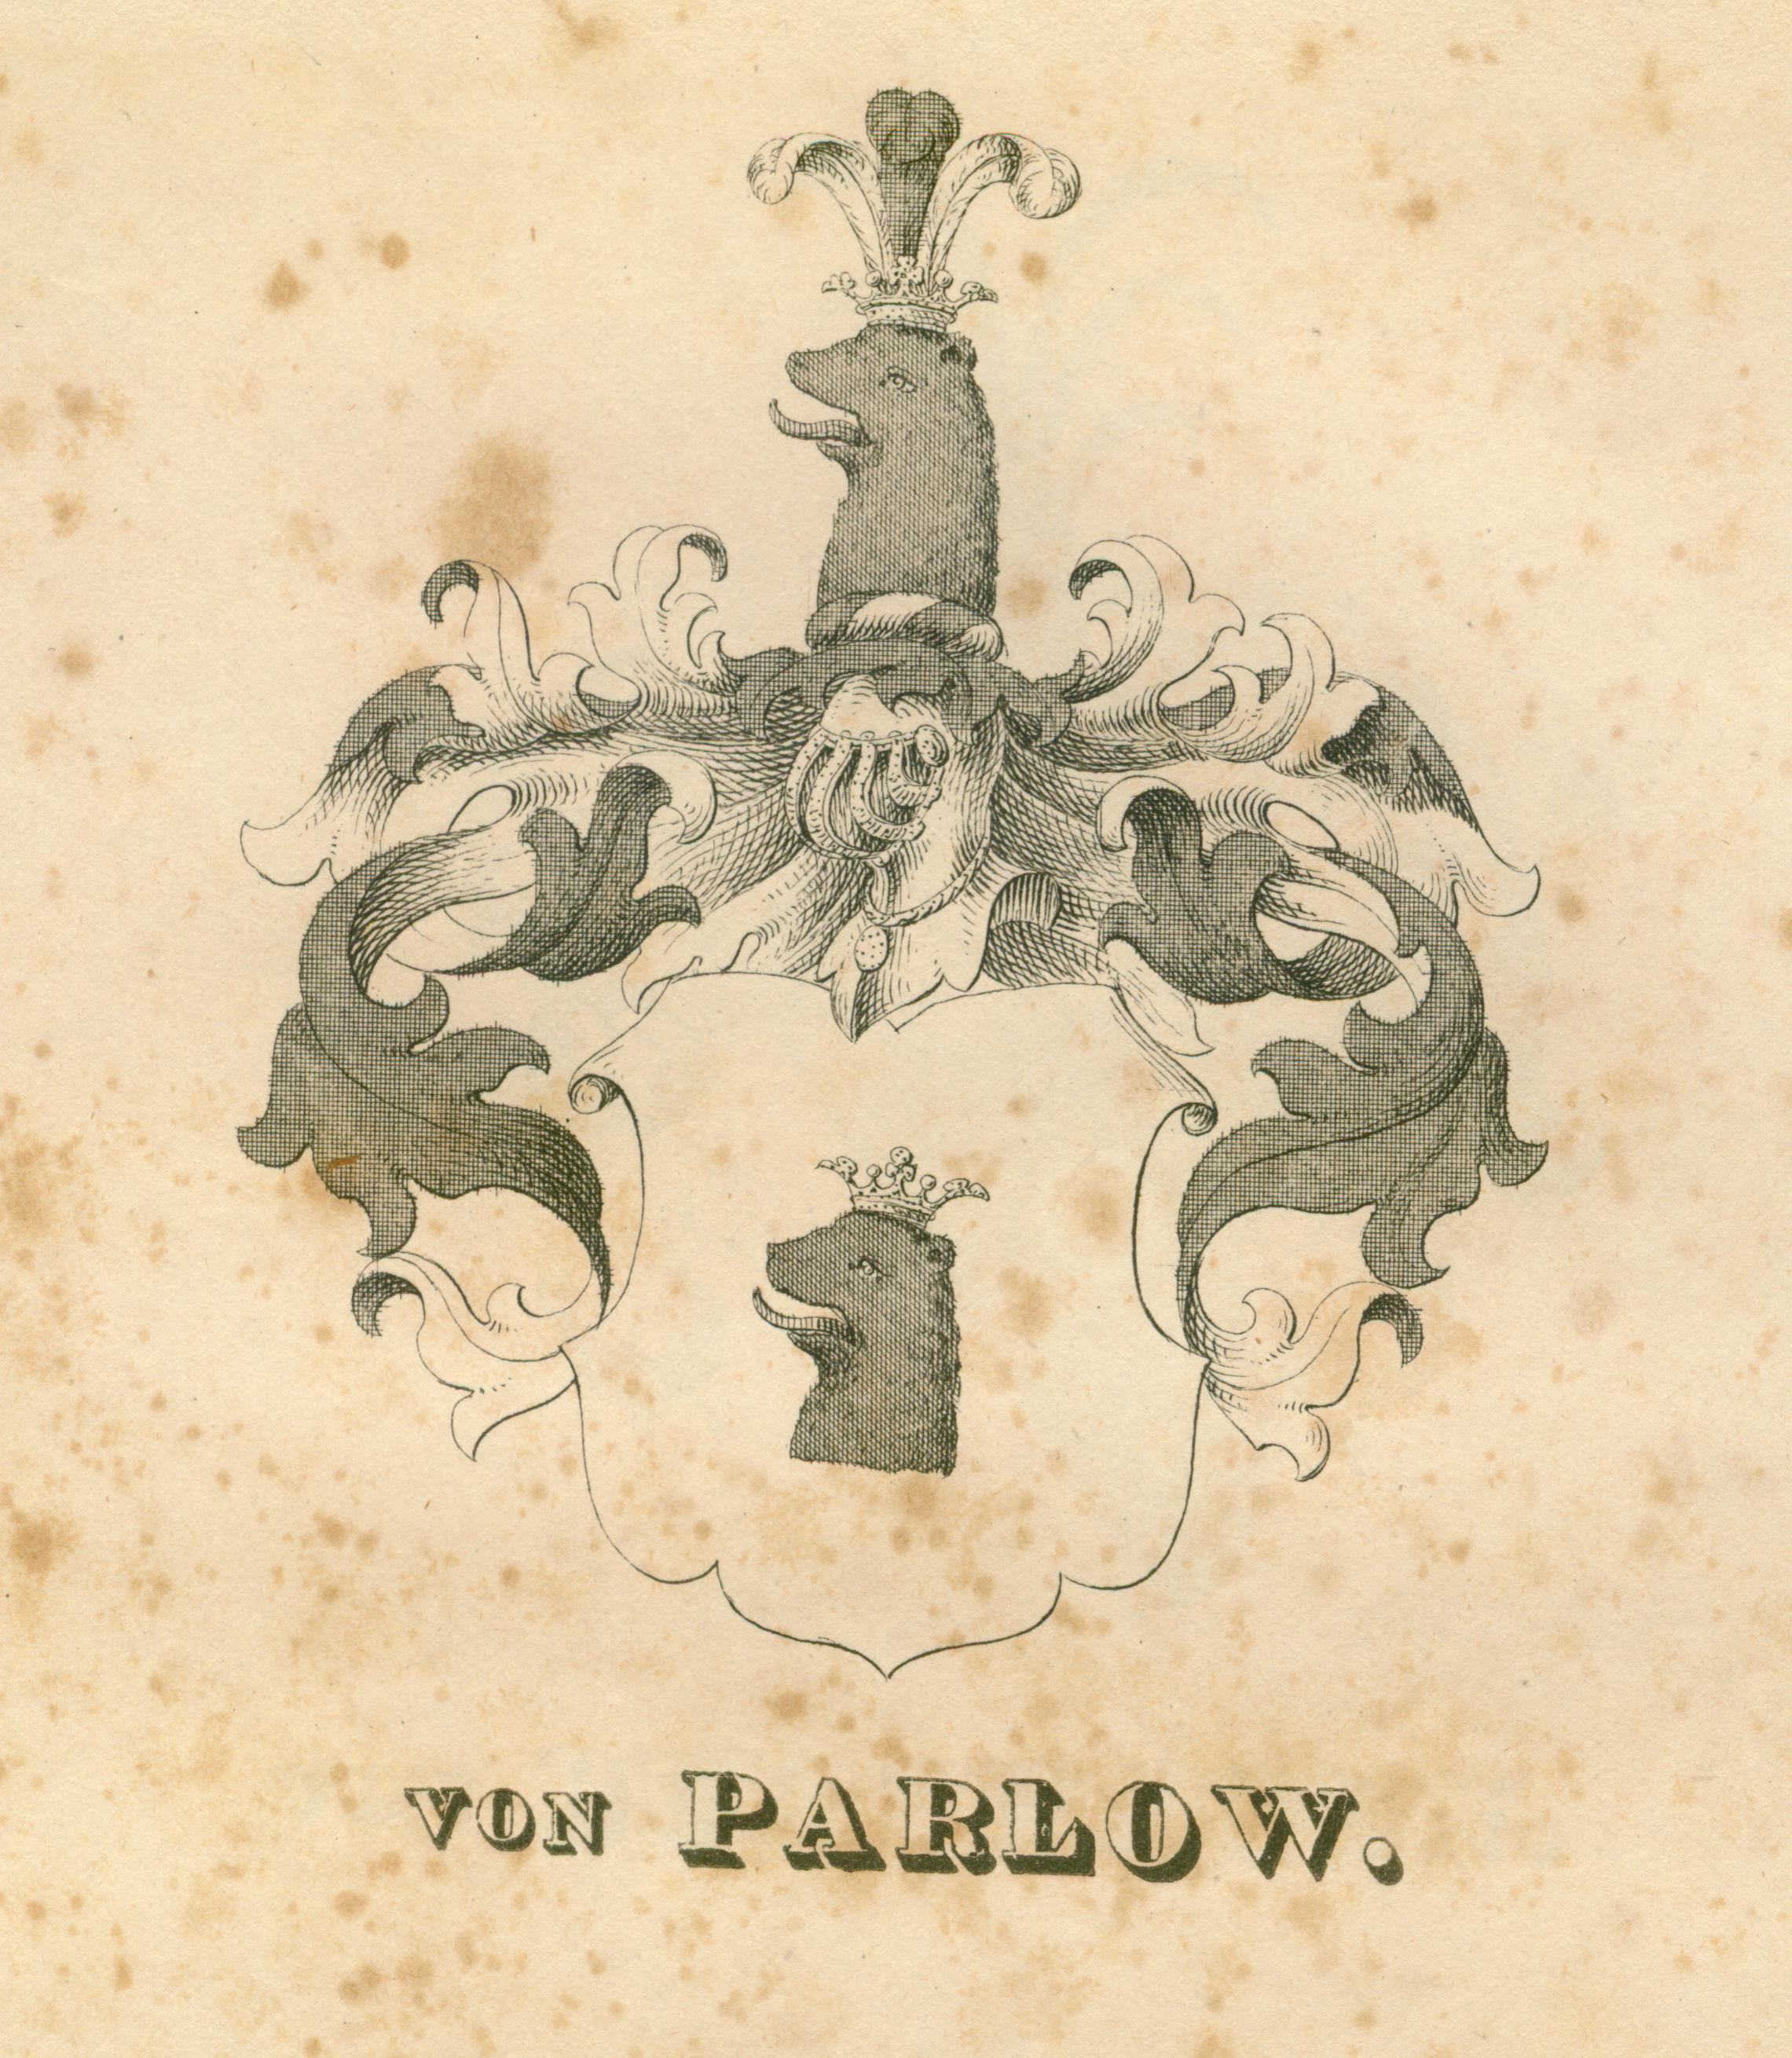 Parlow